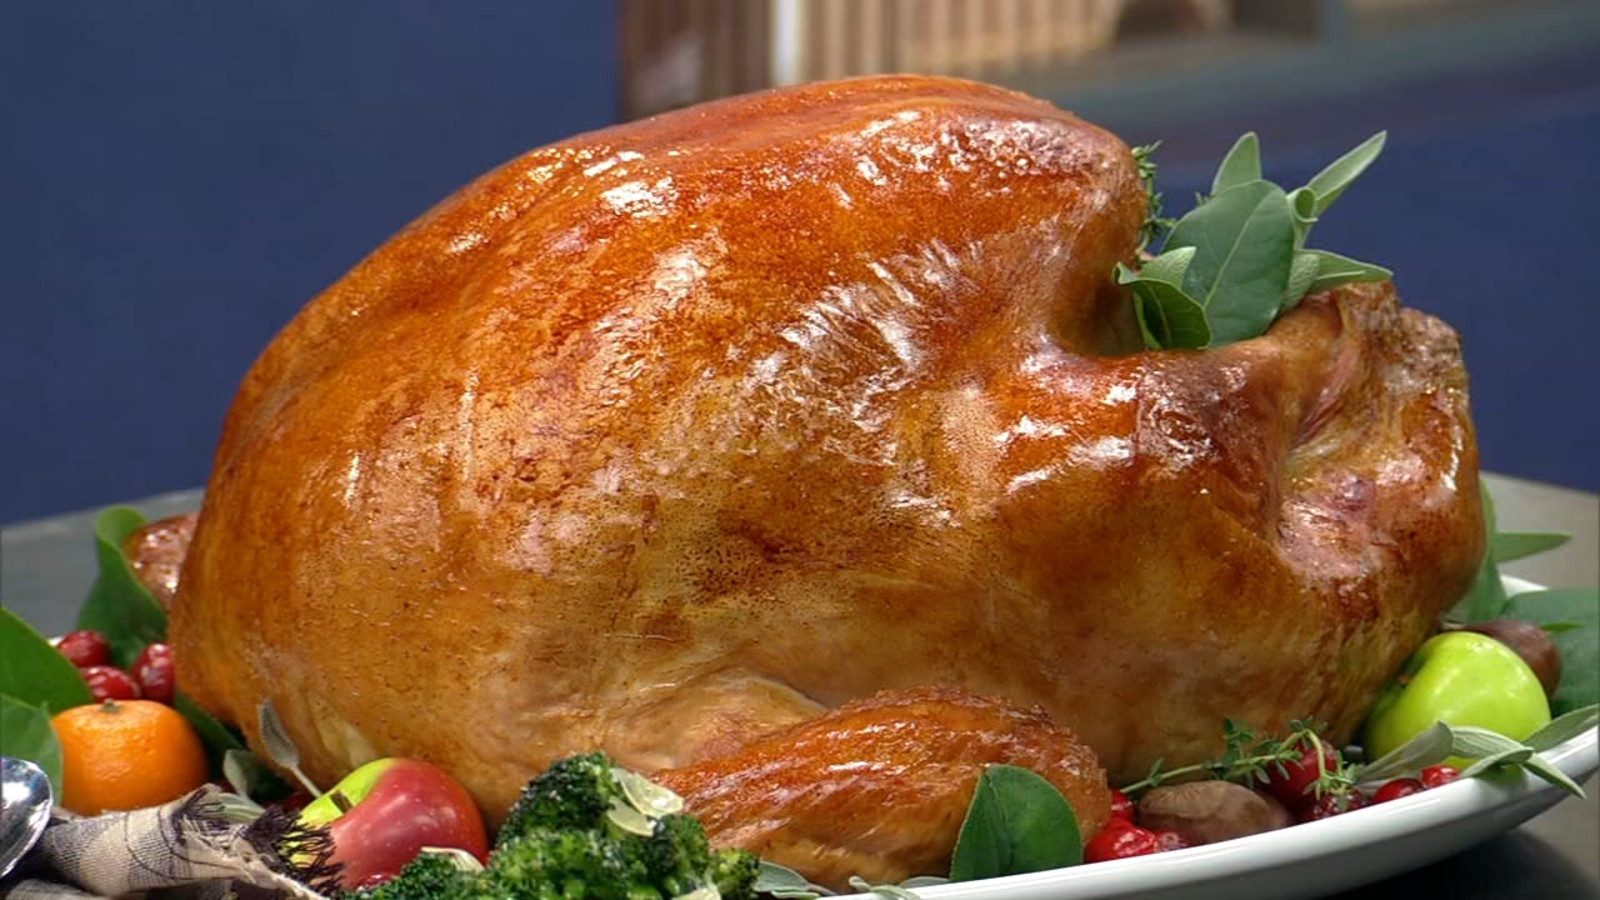 Cooked Thanksgiving Turkey  How to cook a turkey Recipes cooking times from